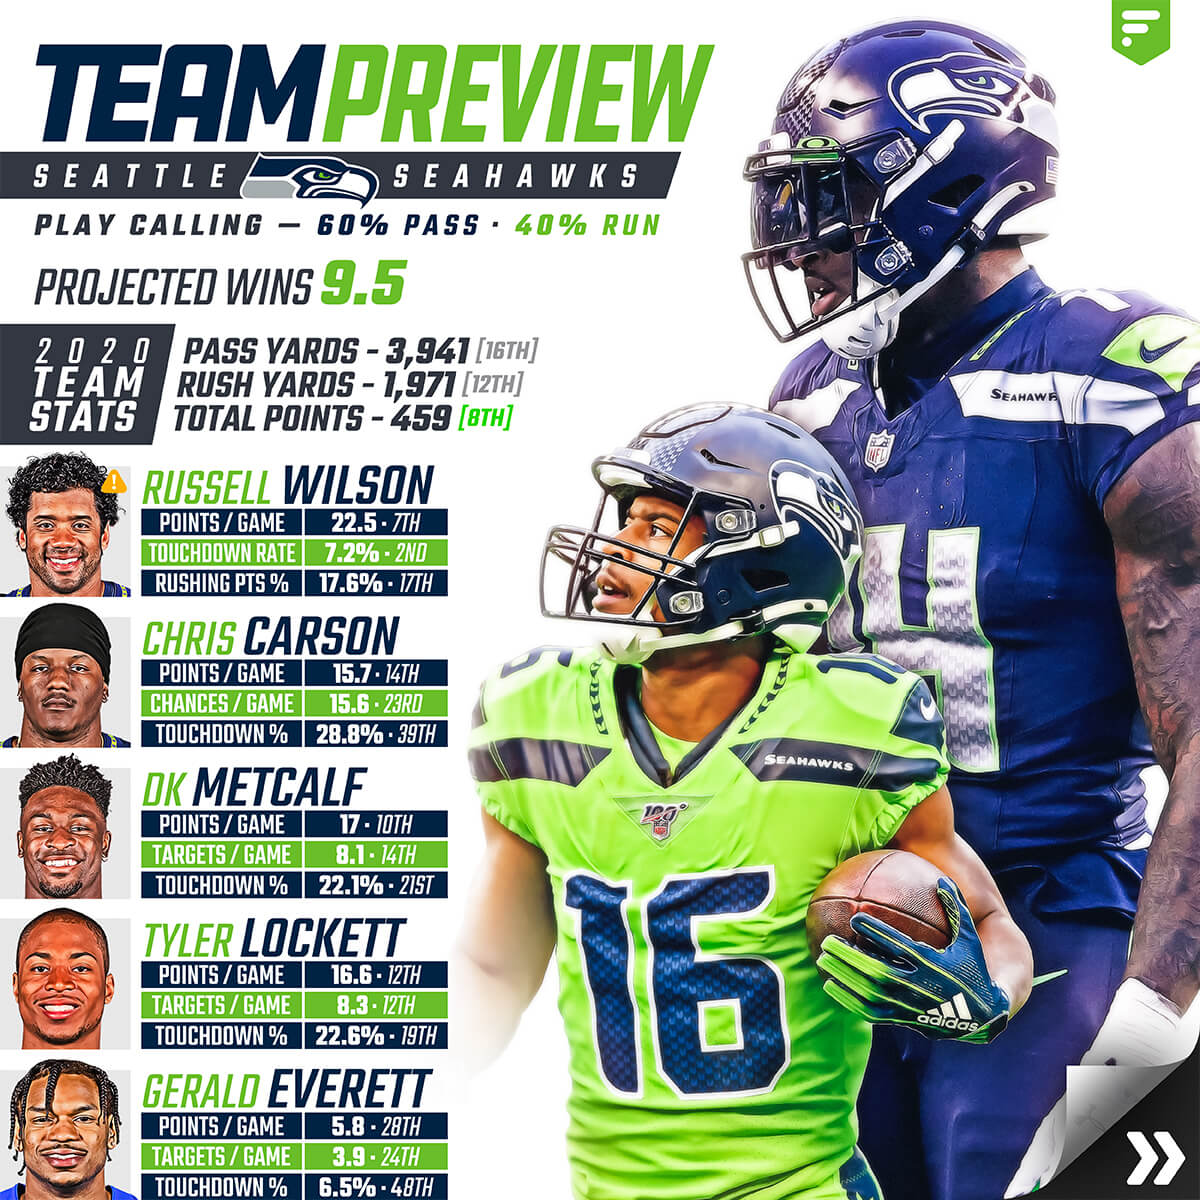 Team Preview Seattle Seahawks